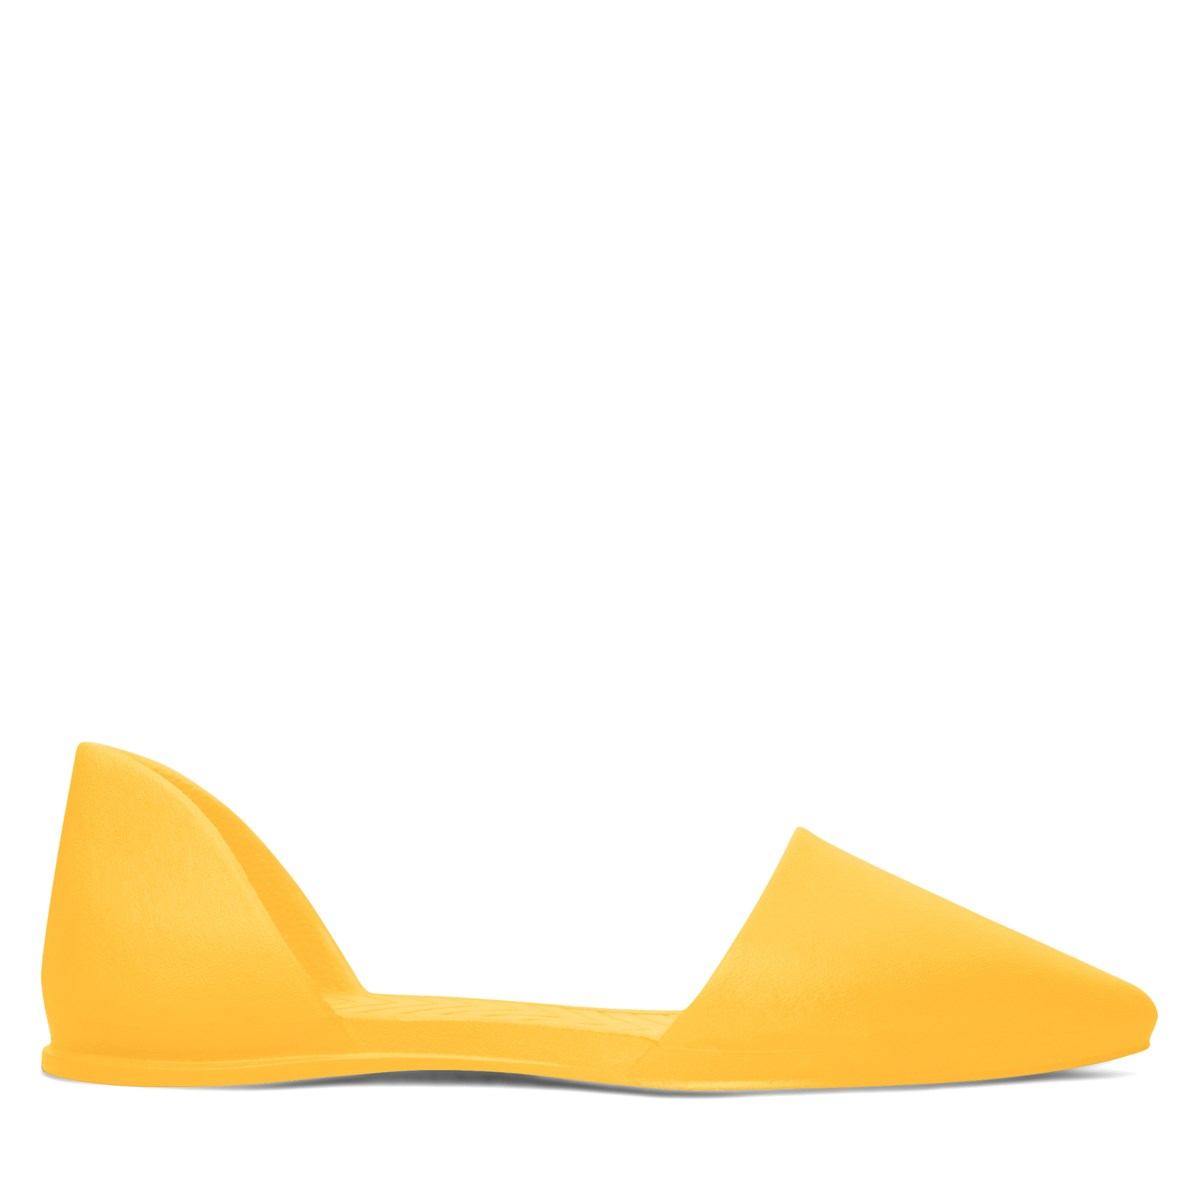 Women's Audrey Flats in Yellow